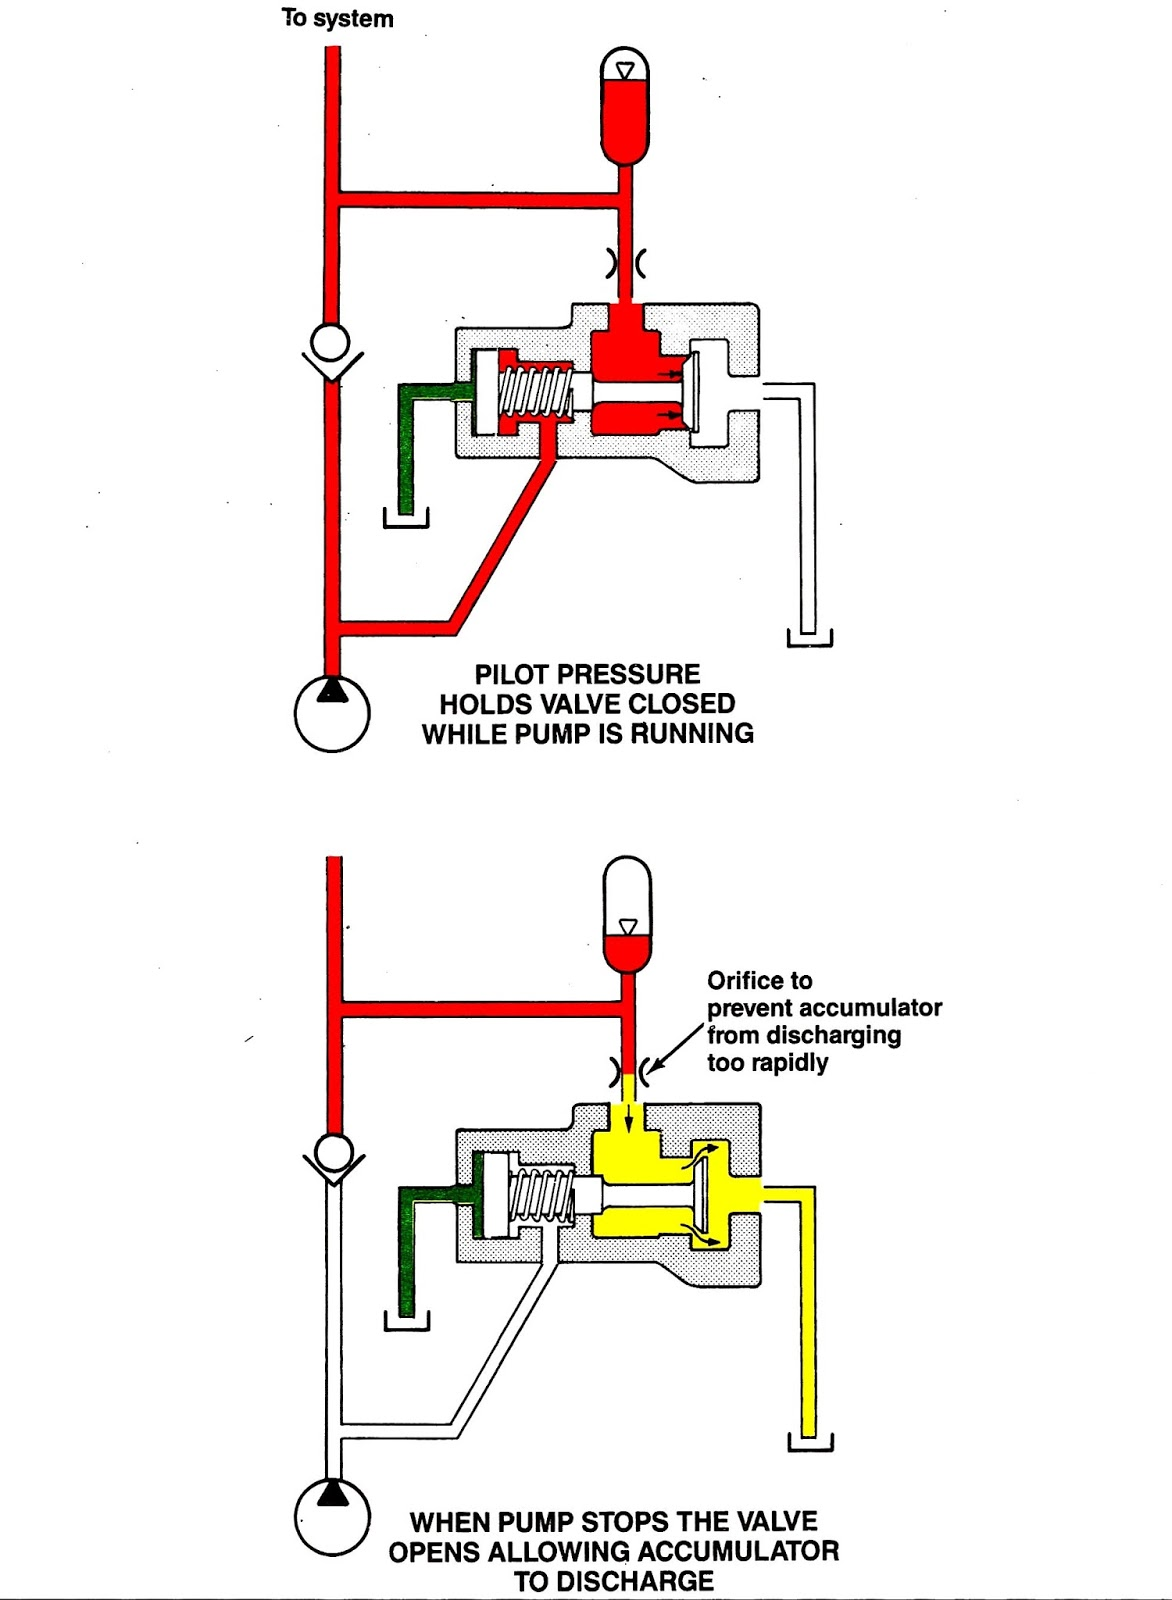 Mariners repository hydraulics part 1 direction control valves a typical application of pilot operated check valves is accumulator unit powered by pump as shown below symbols biocorpaavc